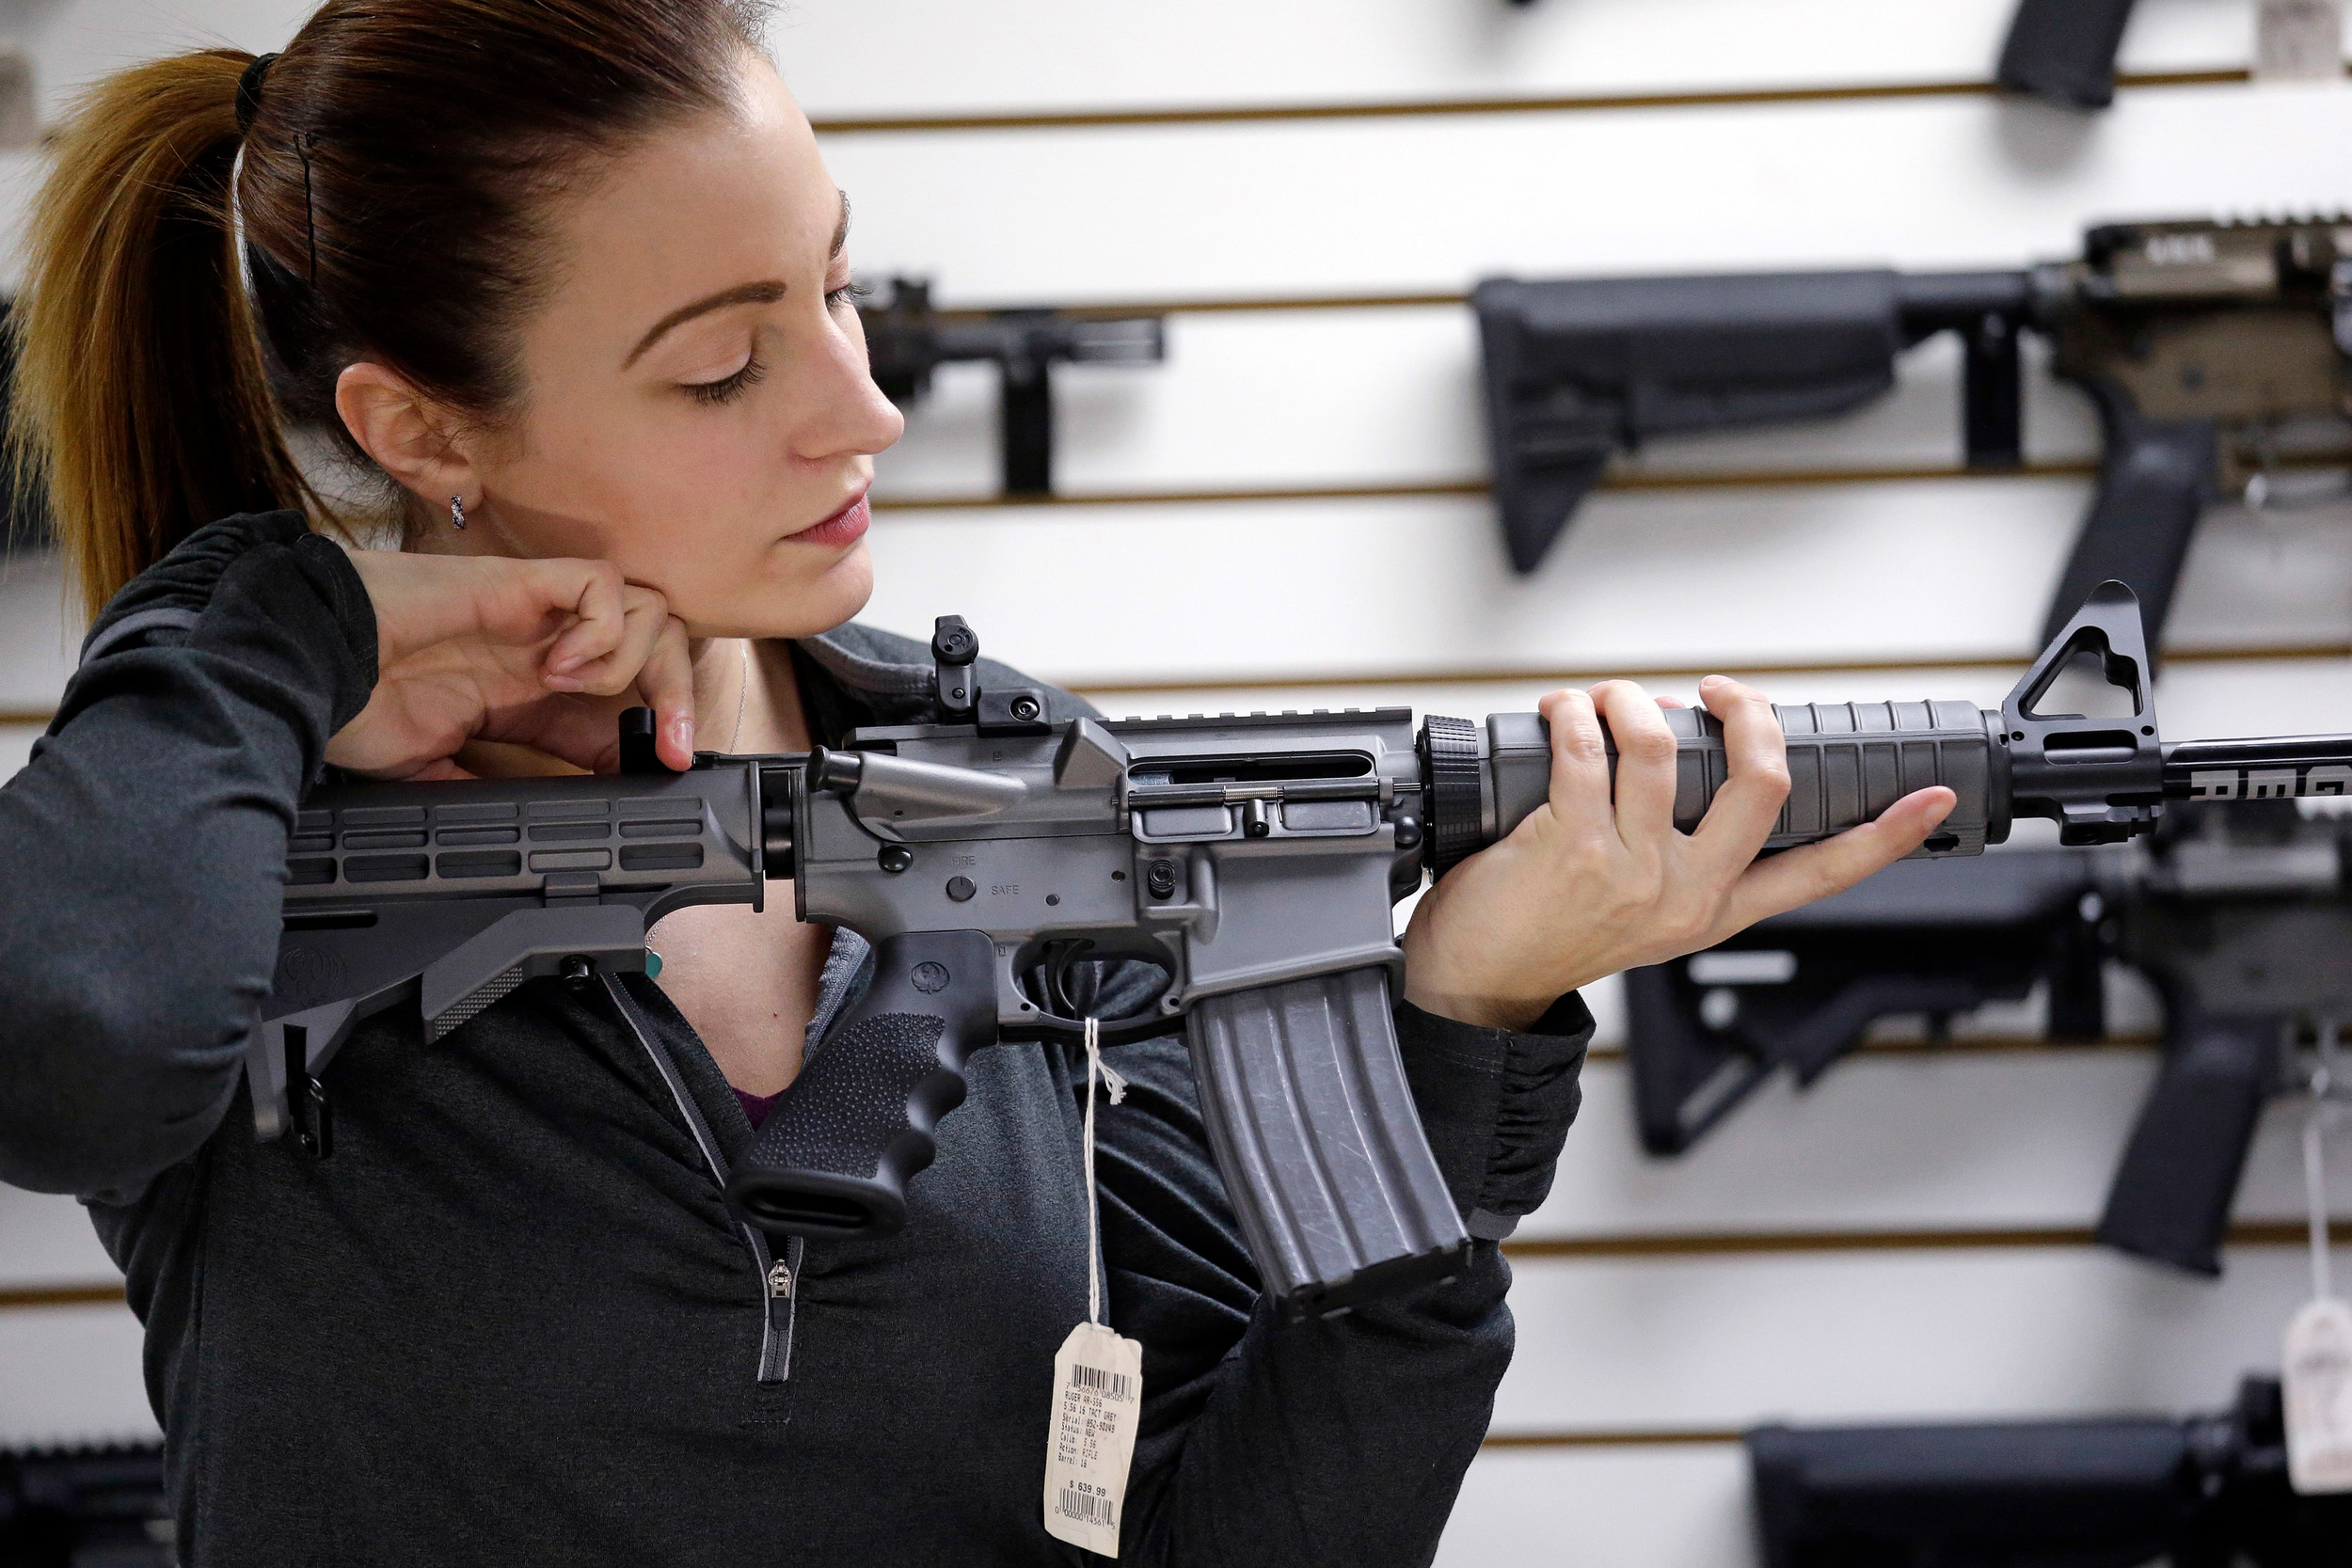 Gun shop owner Tiffany Teasdale-Causer demonstrates a Ruger AR-15 semi-automatic rifle - the same model used by the shooter in the Texas church massacre - at her shop in Lynnwood, Washington.